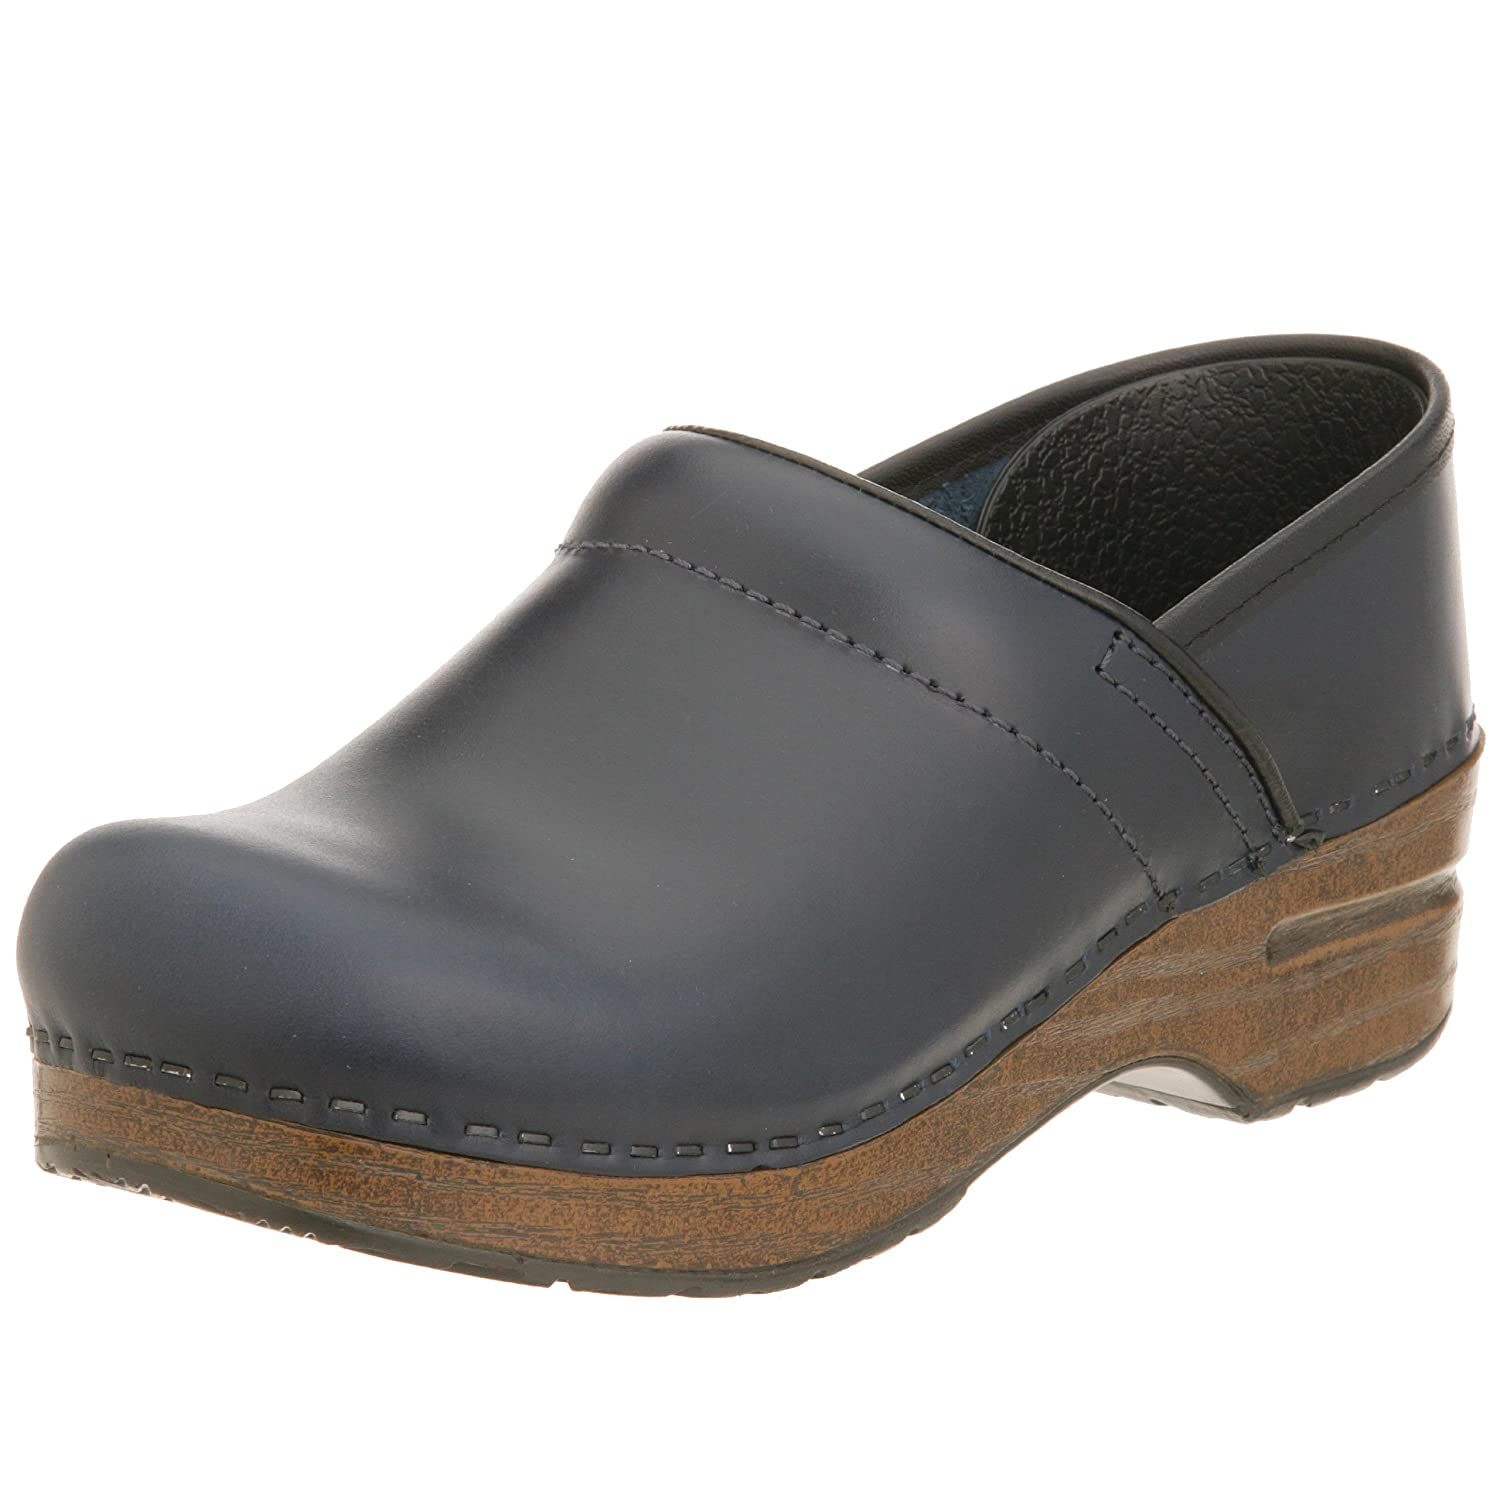 [ダンスコ]dansko フラットシューズ Professional B01HH8WG1I 42 M EU / 11.5-12 B(M) US|Honey Distressed Honey Distressed 42 M EU / 11.5-12 B(M) US